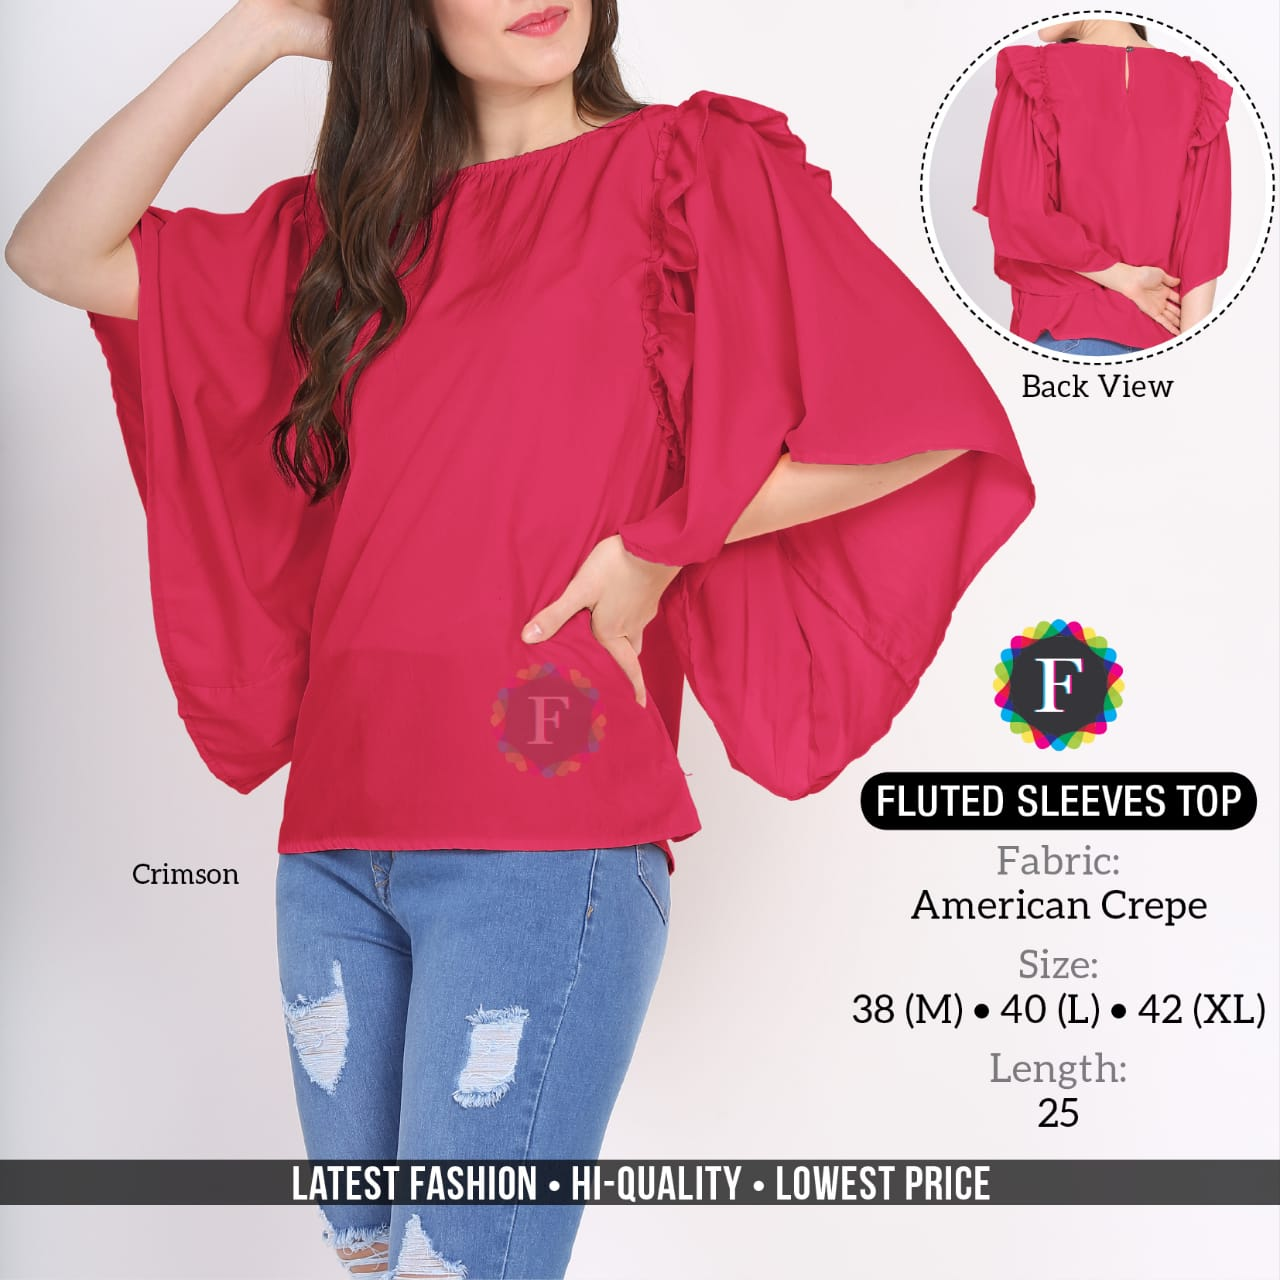 Fluted Sleeves Top Western Style Girls Tops Wholesaler